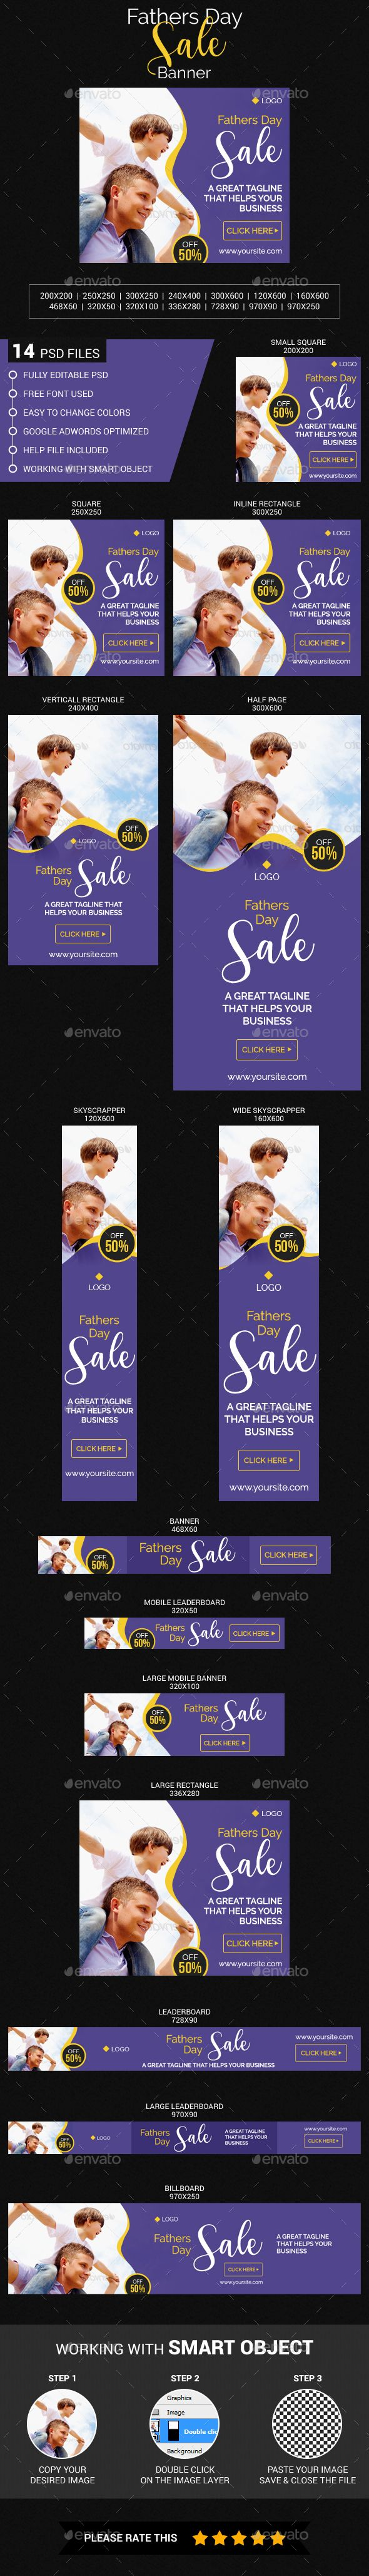 Fathers Day Sale - #Banners & Ads #Web Elements Download here:  https://graphicriver.net/item/fathers-day-sale/20106816?ref=alena994